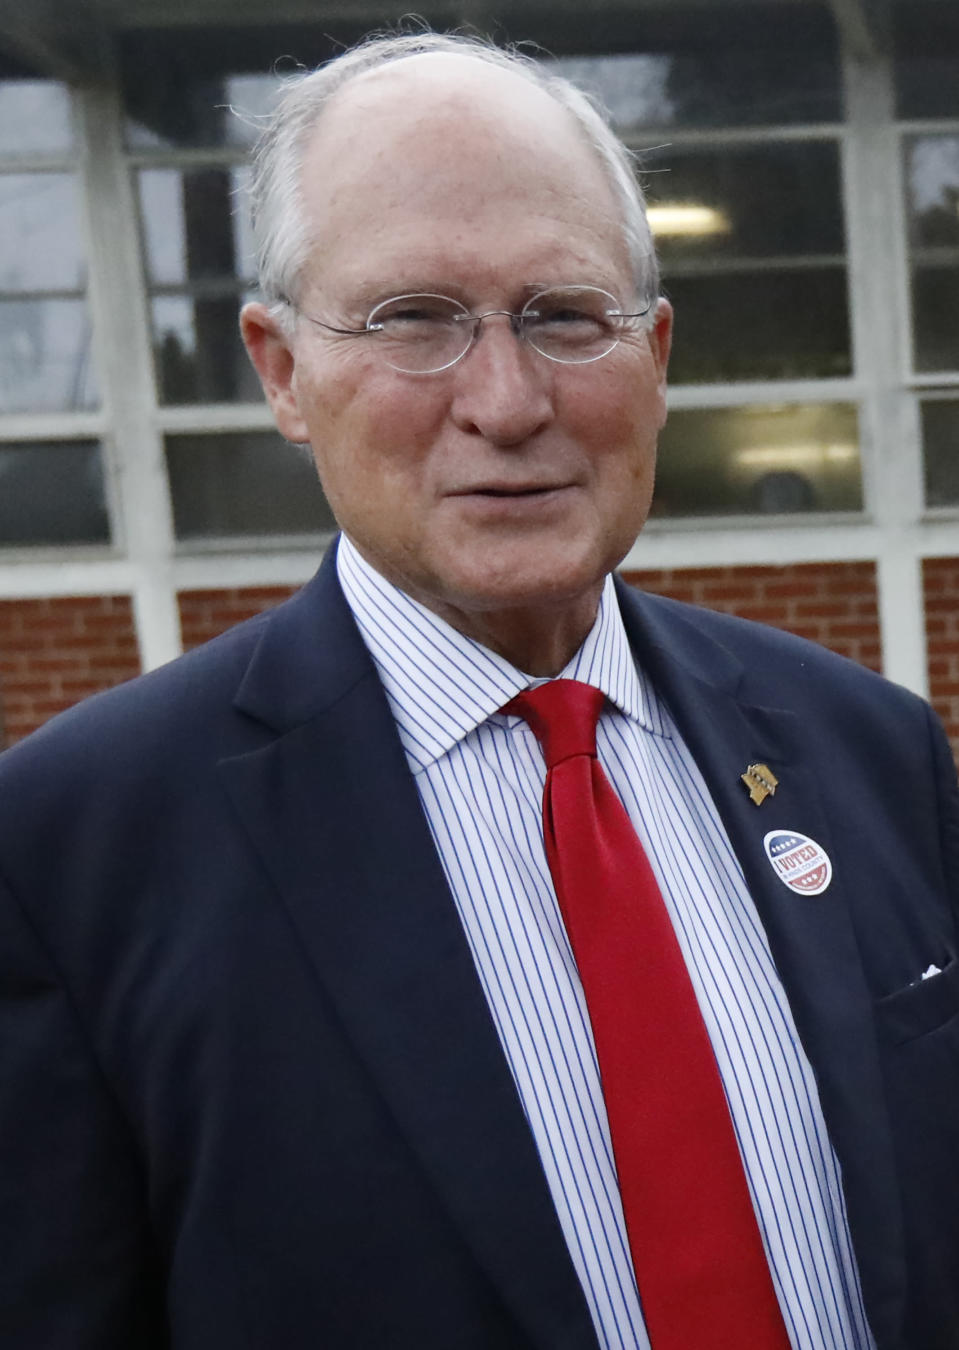 Former Mississippi Supreme Court Chief Justice Bill Waller Jr., speaks to reporters about his hopes for a big turnout of supporters in his runoff race against Lt. Governor Tate Reeves for the GOP nomination for governor, Tuesday, Aug. 27, 2019 at his Jackson, Miss., voting precinct. (AP Photo/Rogelio V. Solis)